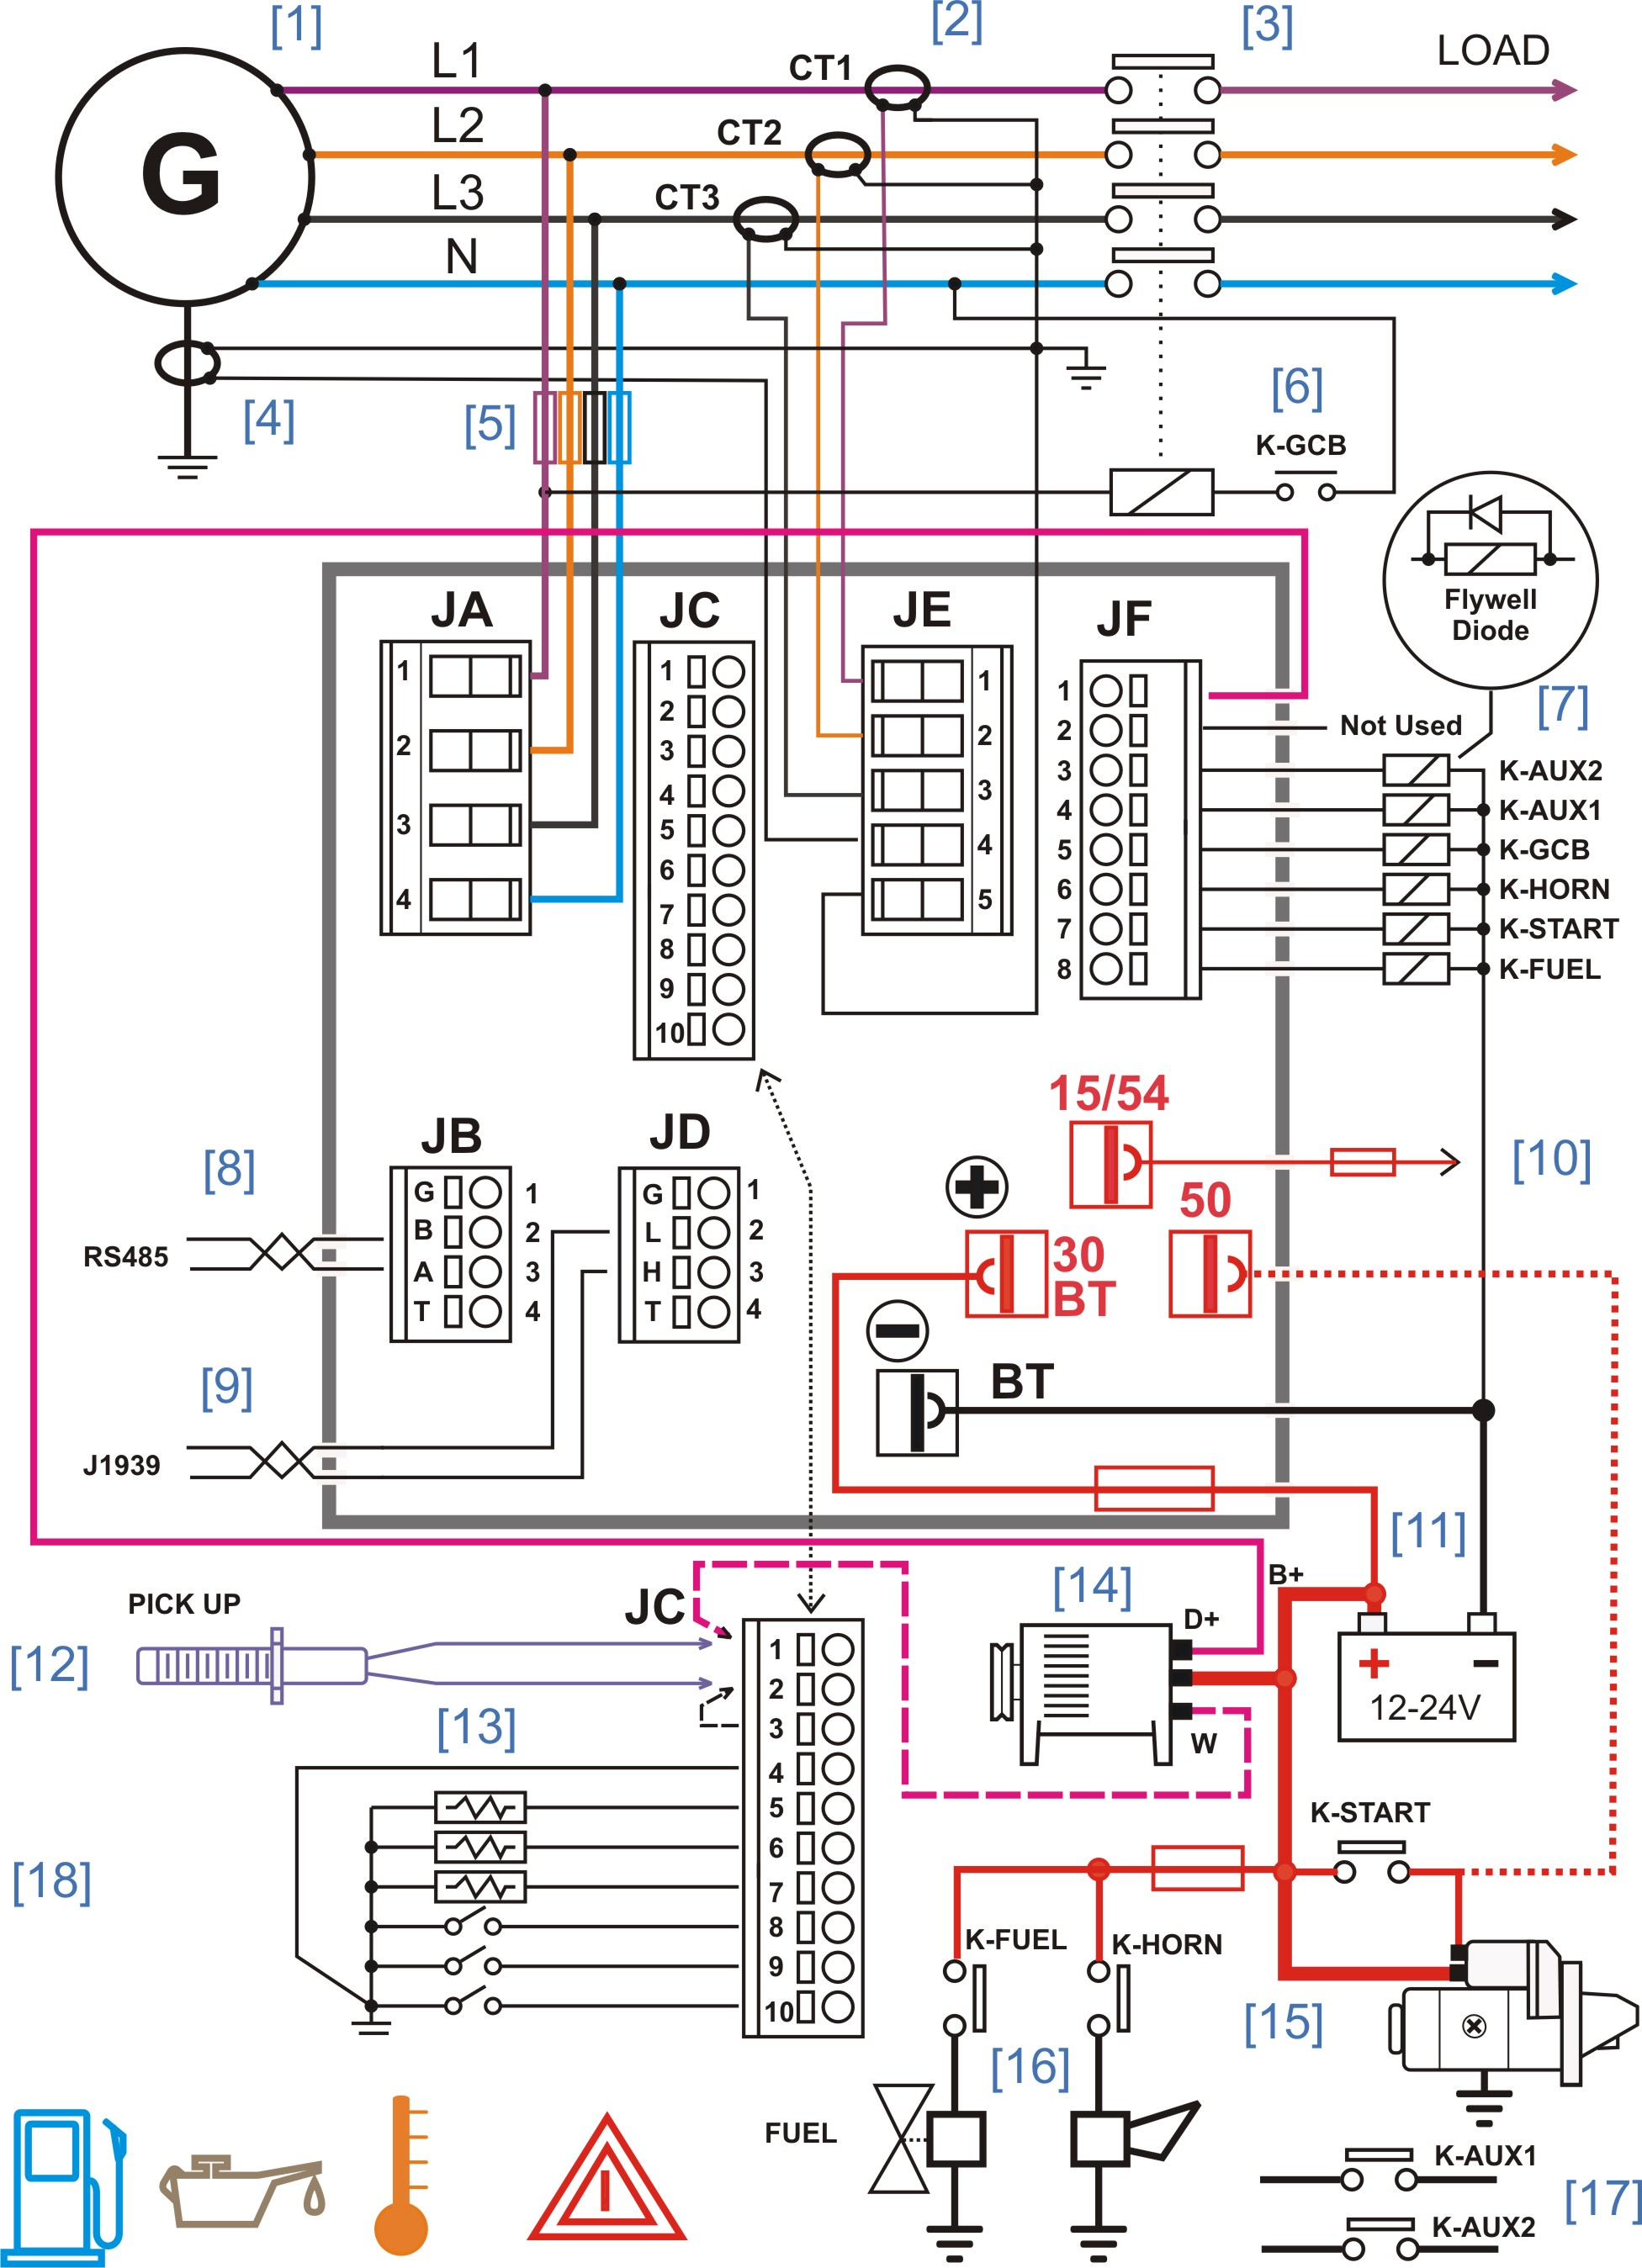 Diesel Generator Control Panel Wiring Diagram diesel generator control panel wiring diagram genset controller control panel wiring at fashall.co